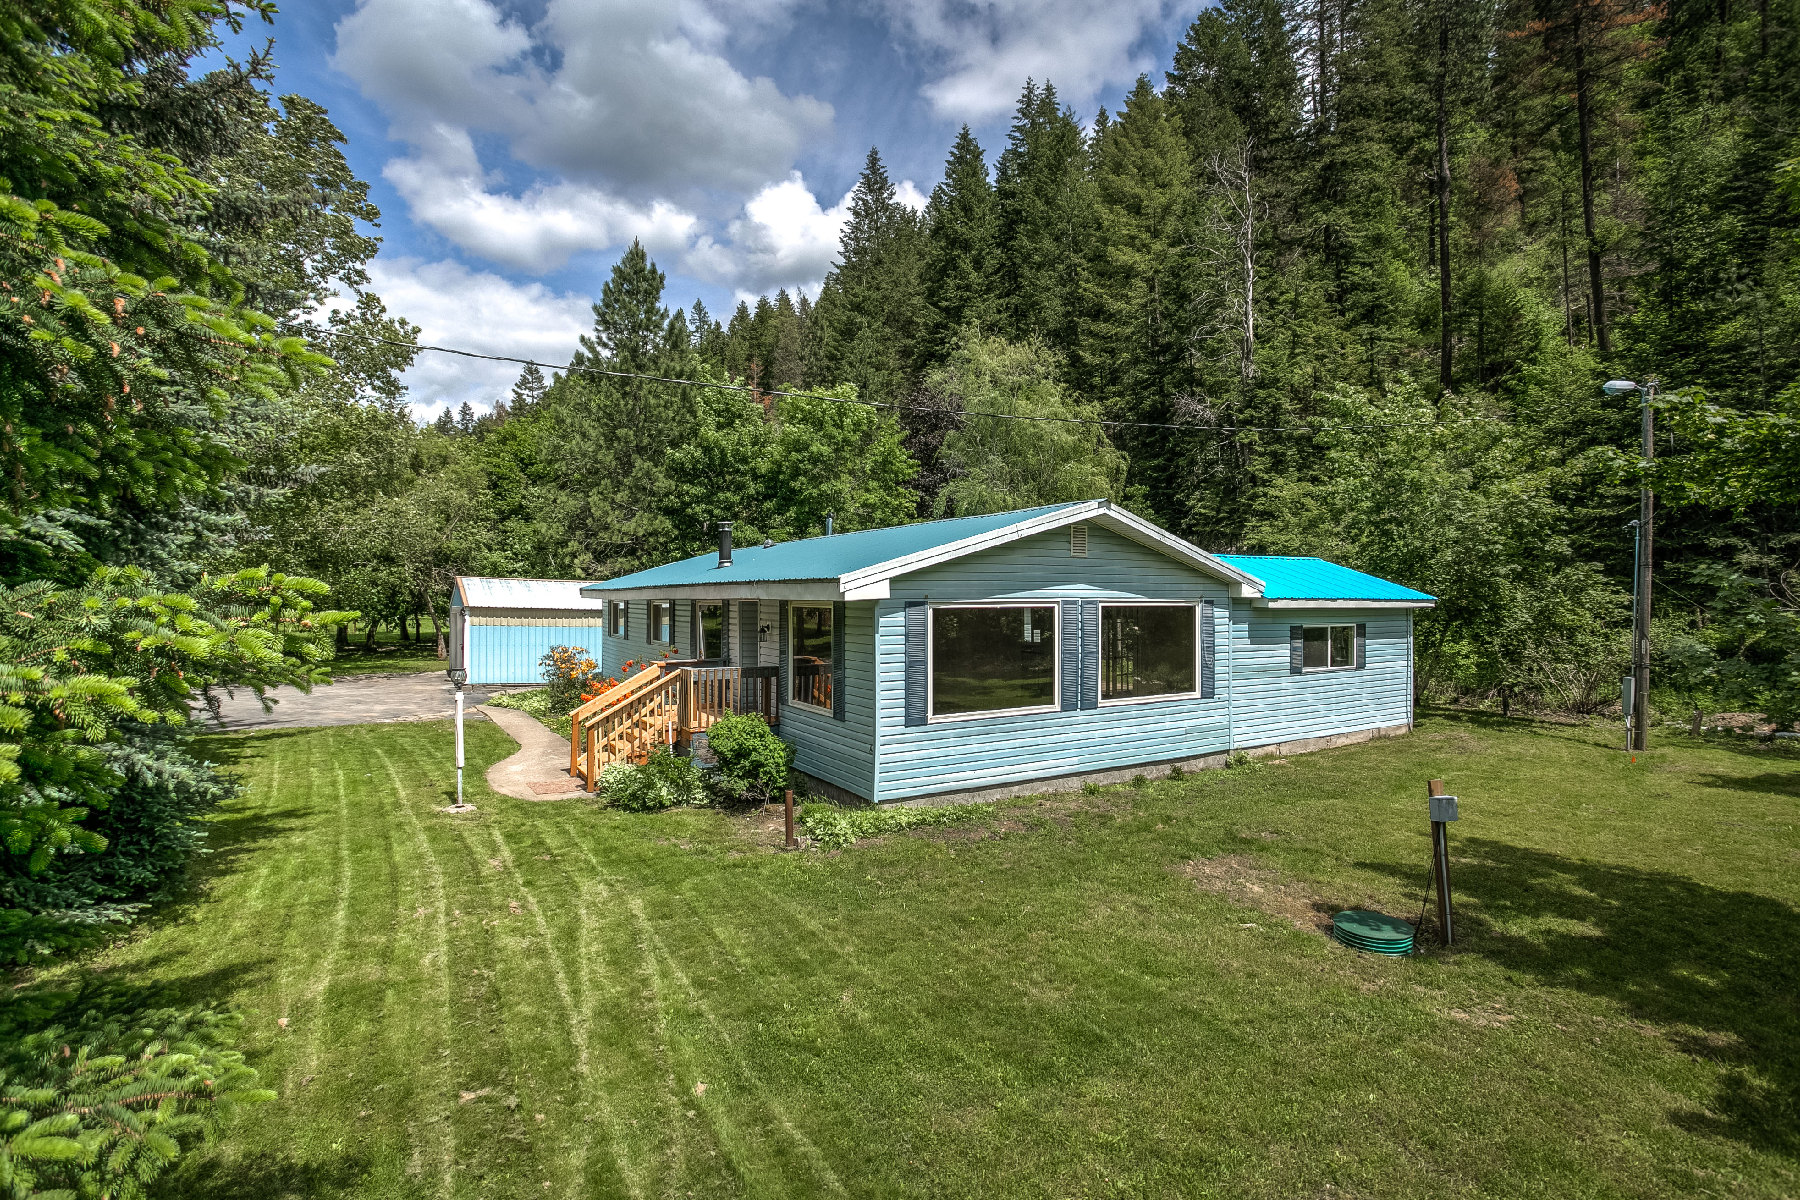 Single Family Home for Sale at Remodeled with Seasonal Creek and Acreage 5844 S Blue Creek Coeur D Alene, Idaho, 83814 United States